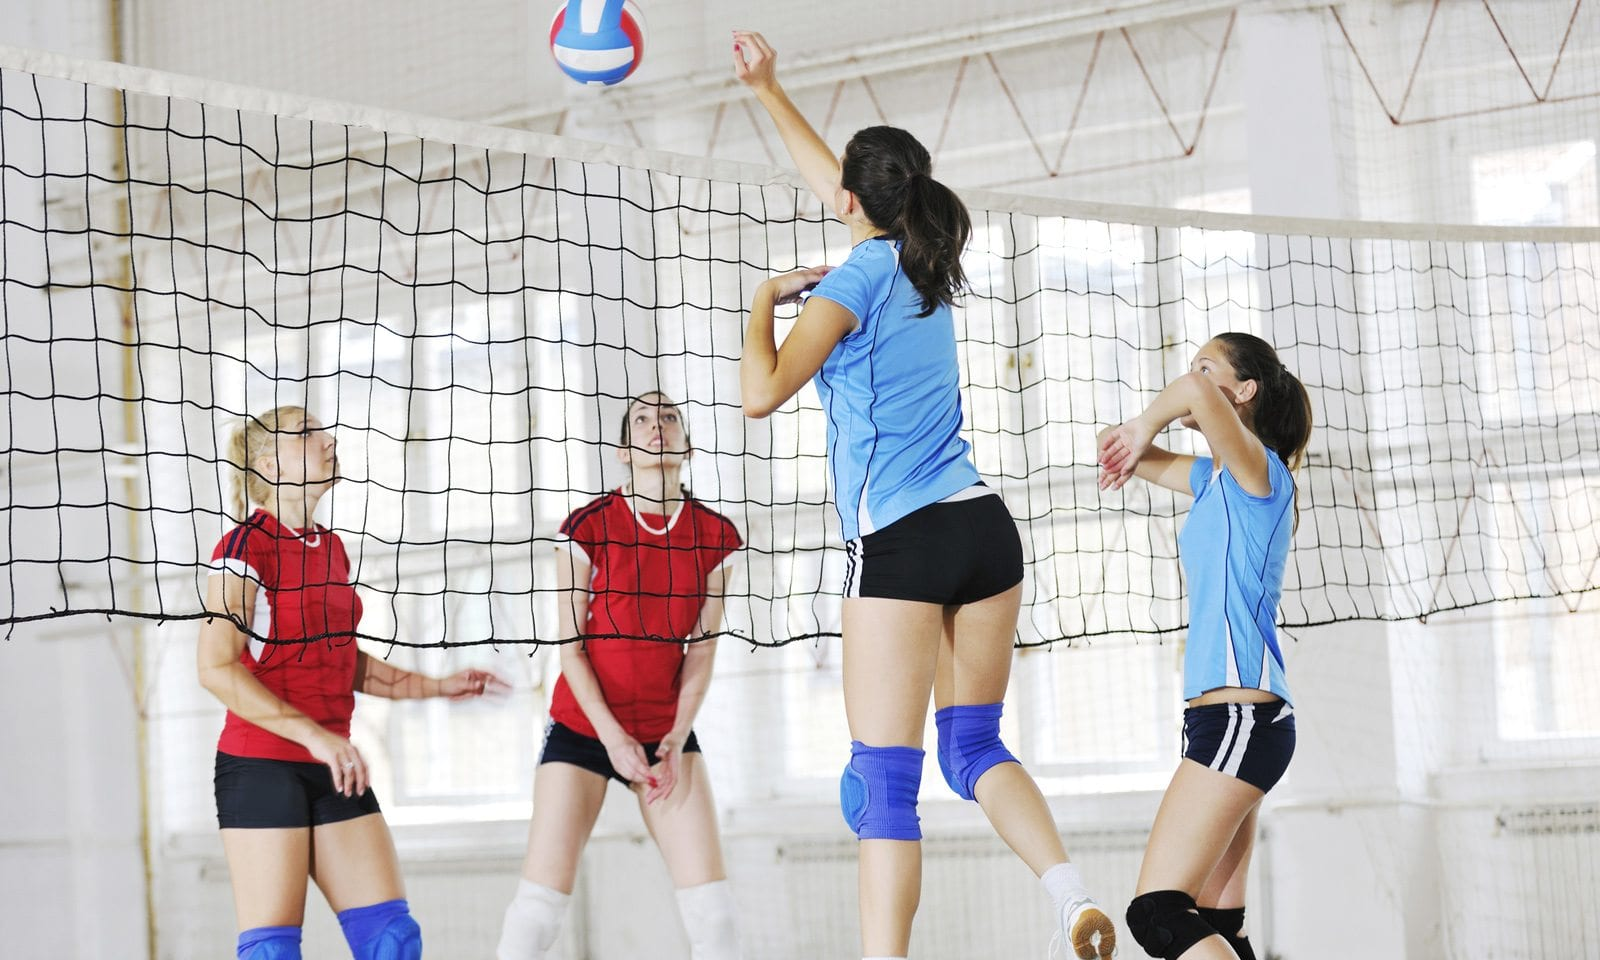 volleyball-net-image